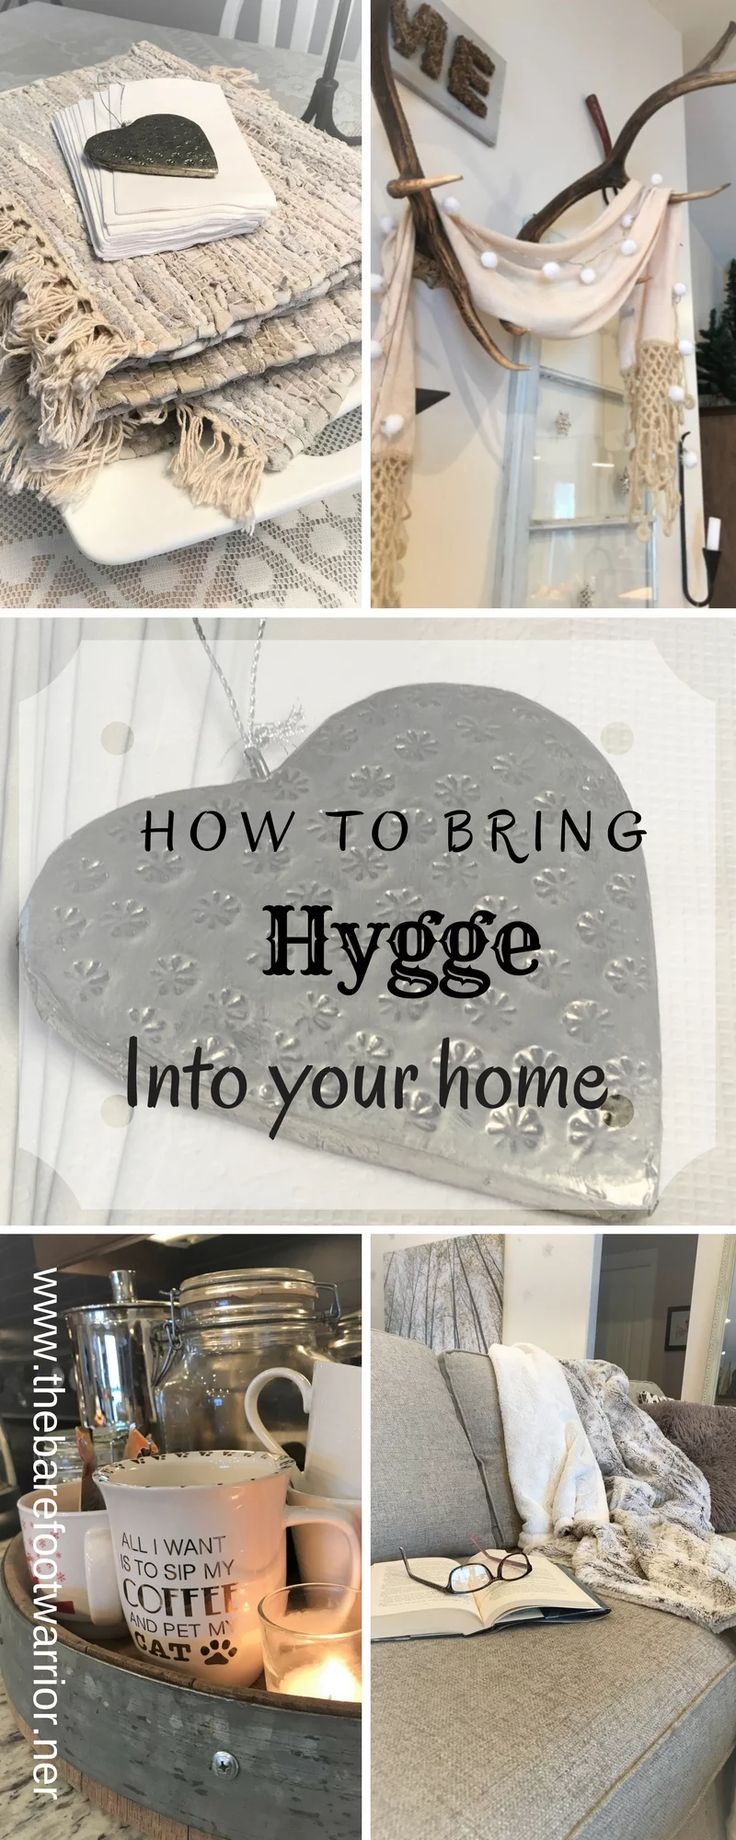 How To Bring Hygge Style Into Your Home | The Barefoot Warrior, blog